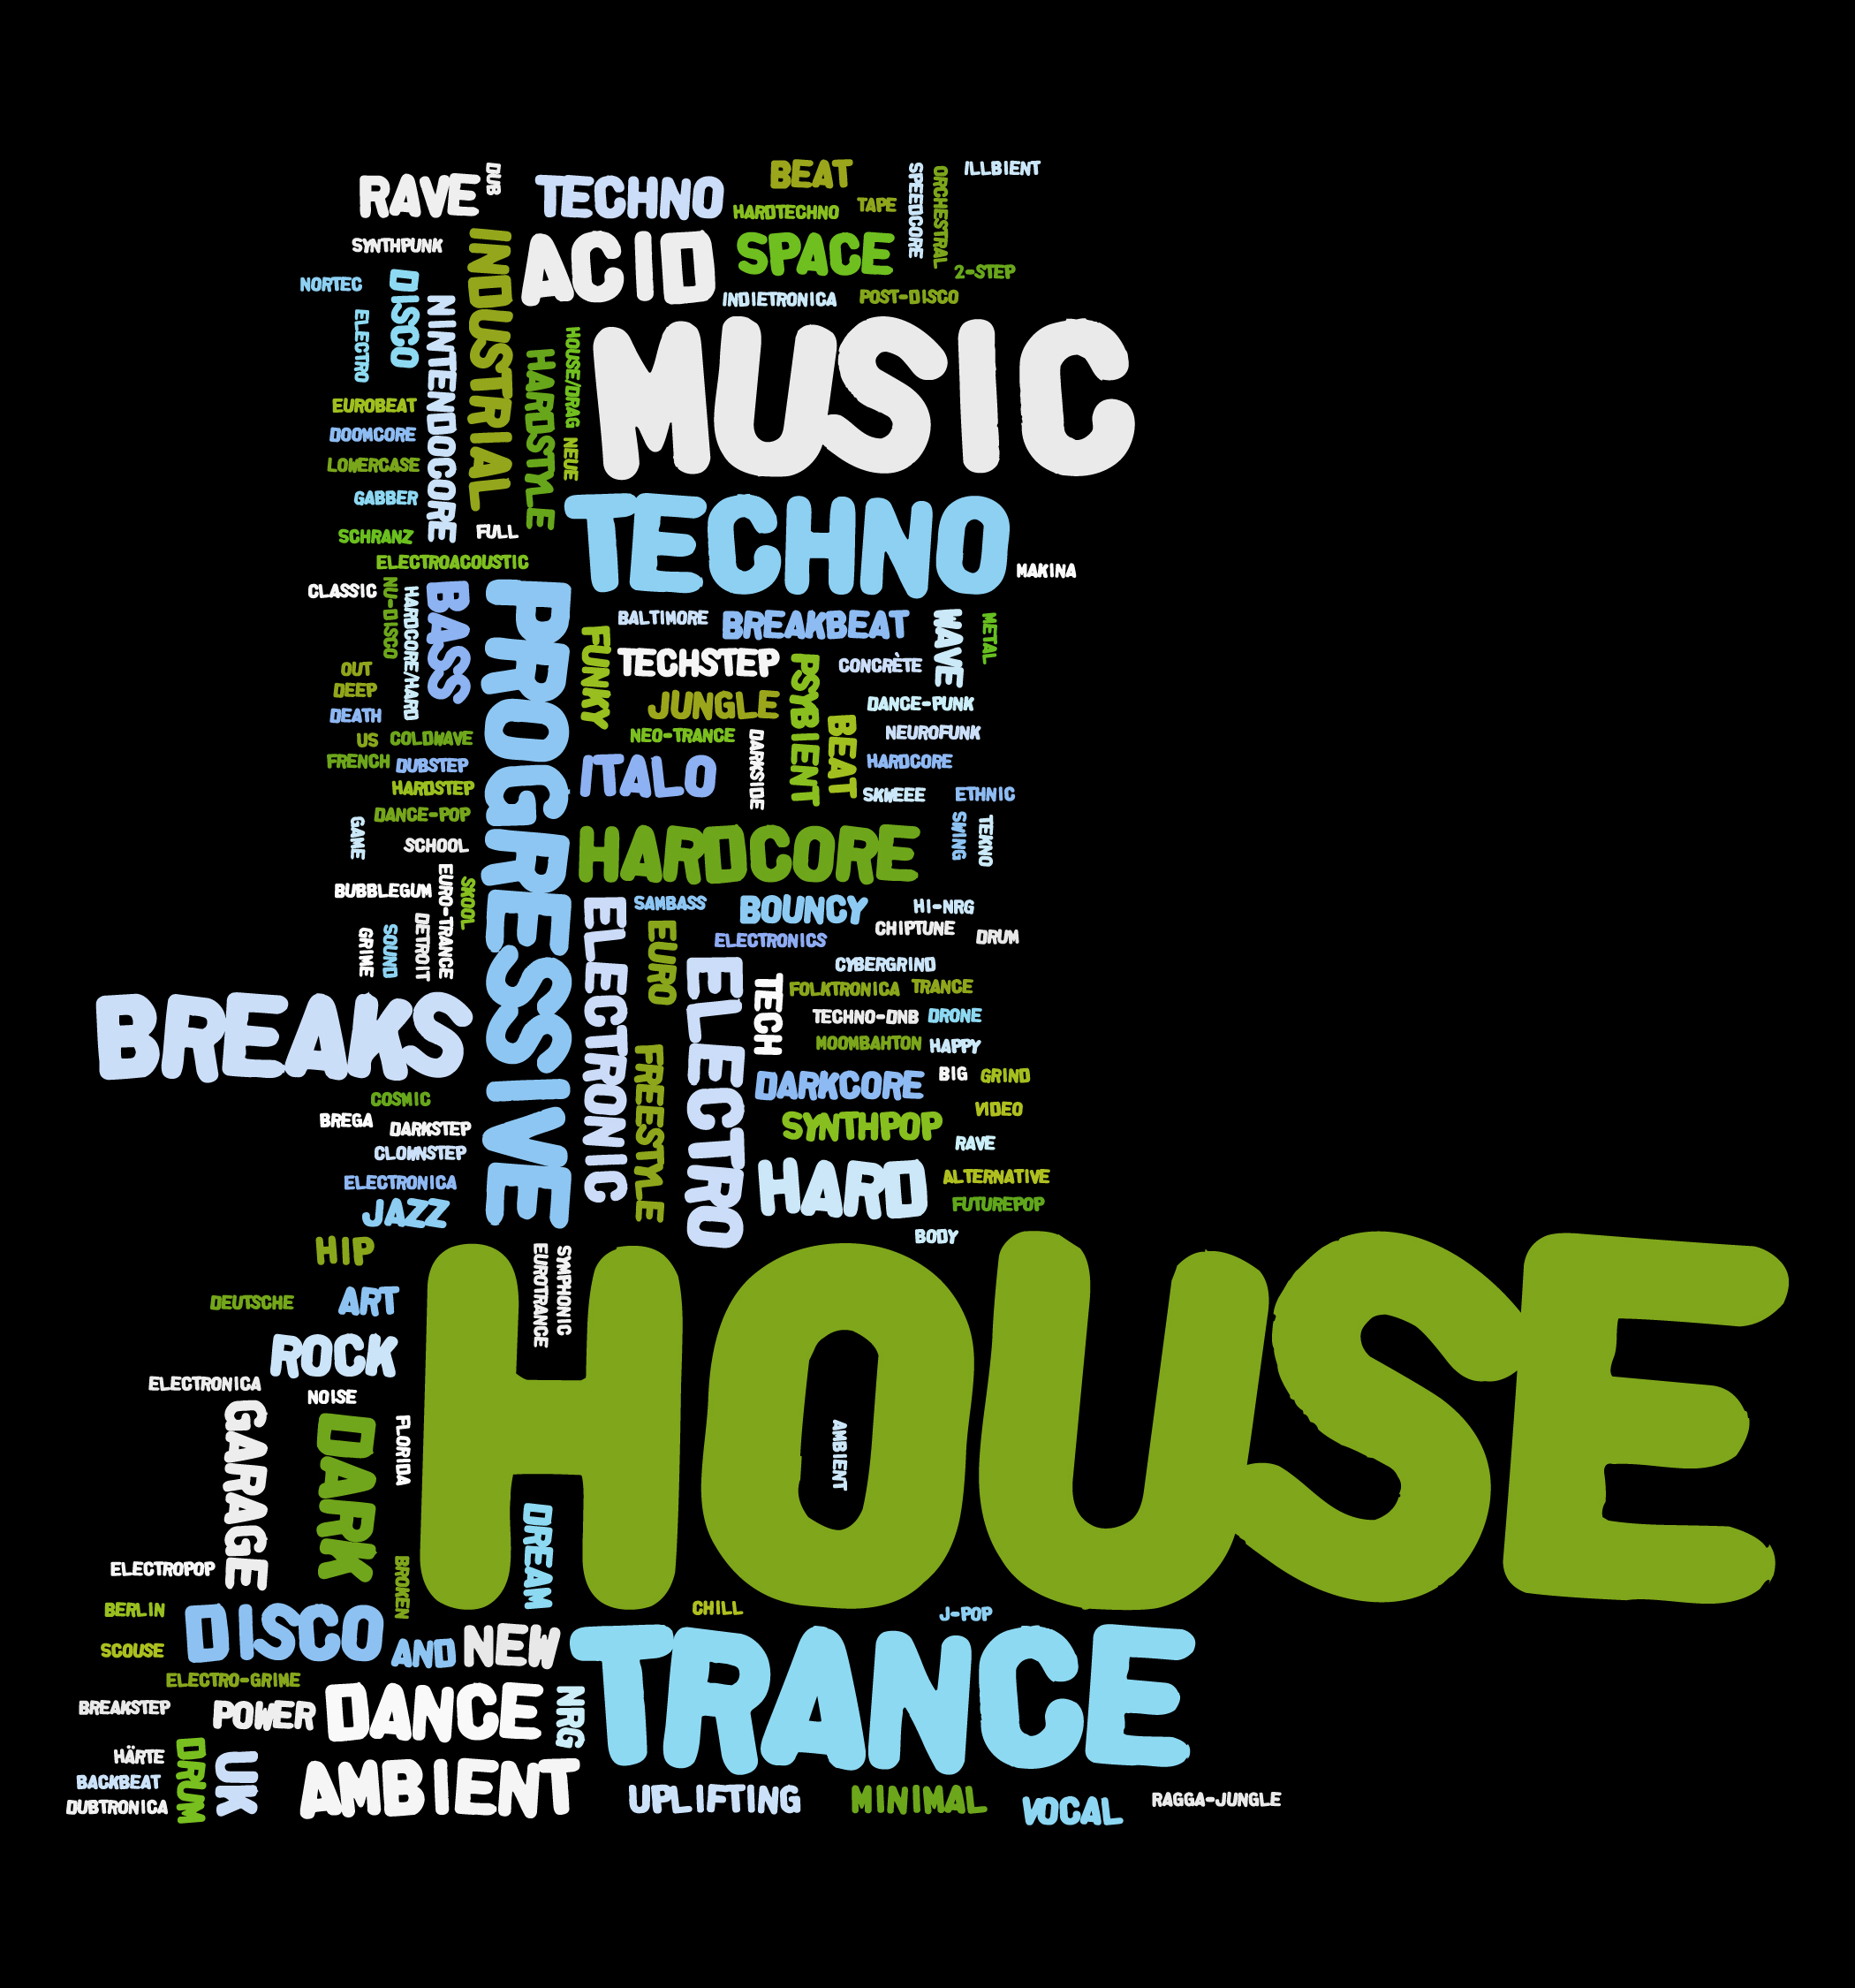 Electronic dance music group tracks for House music dance